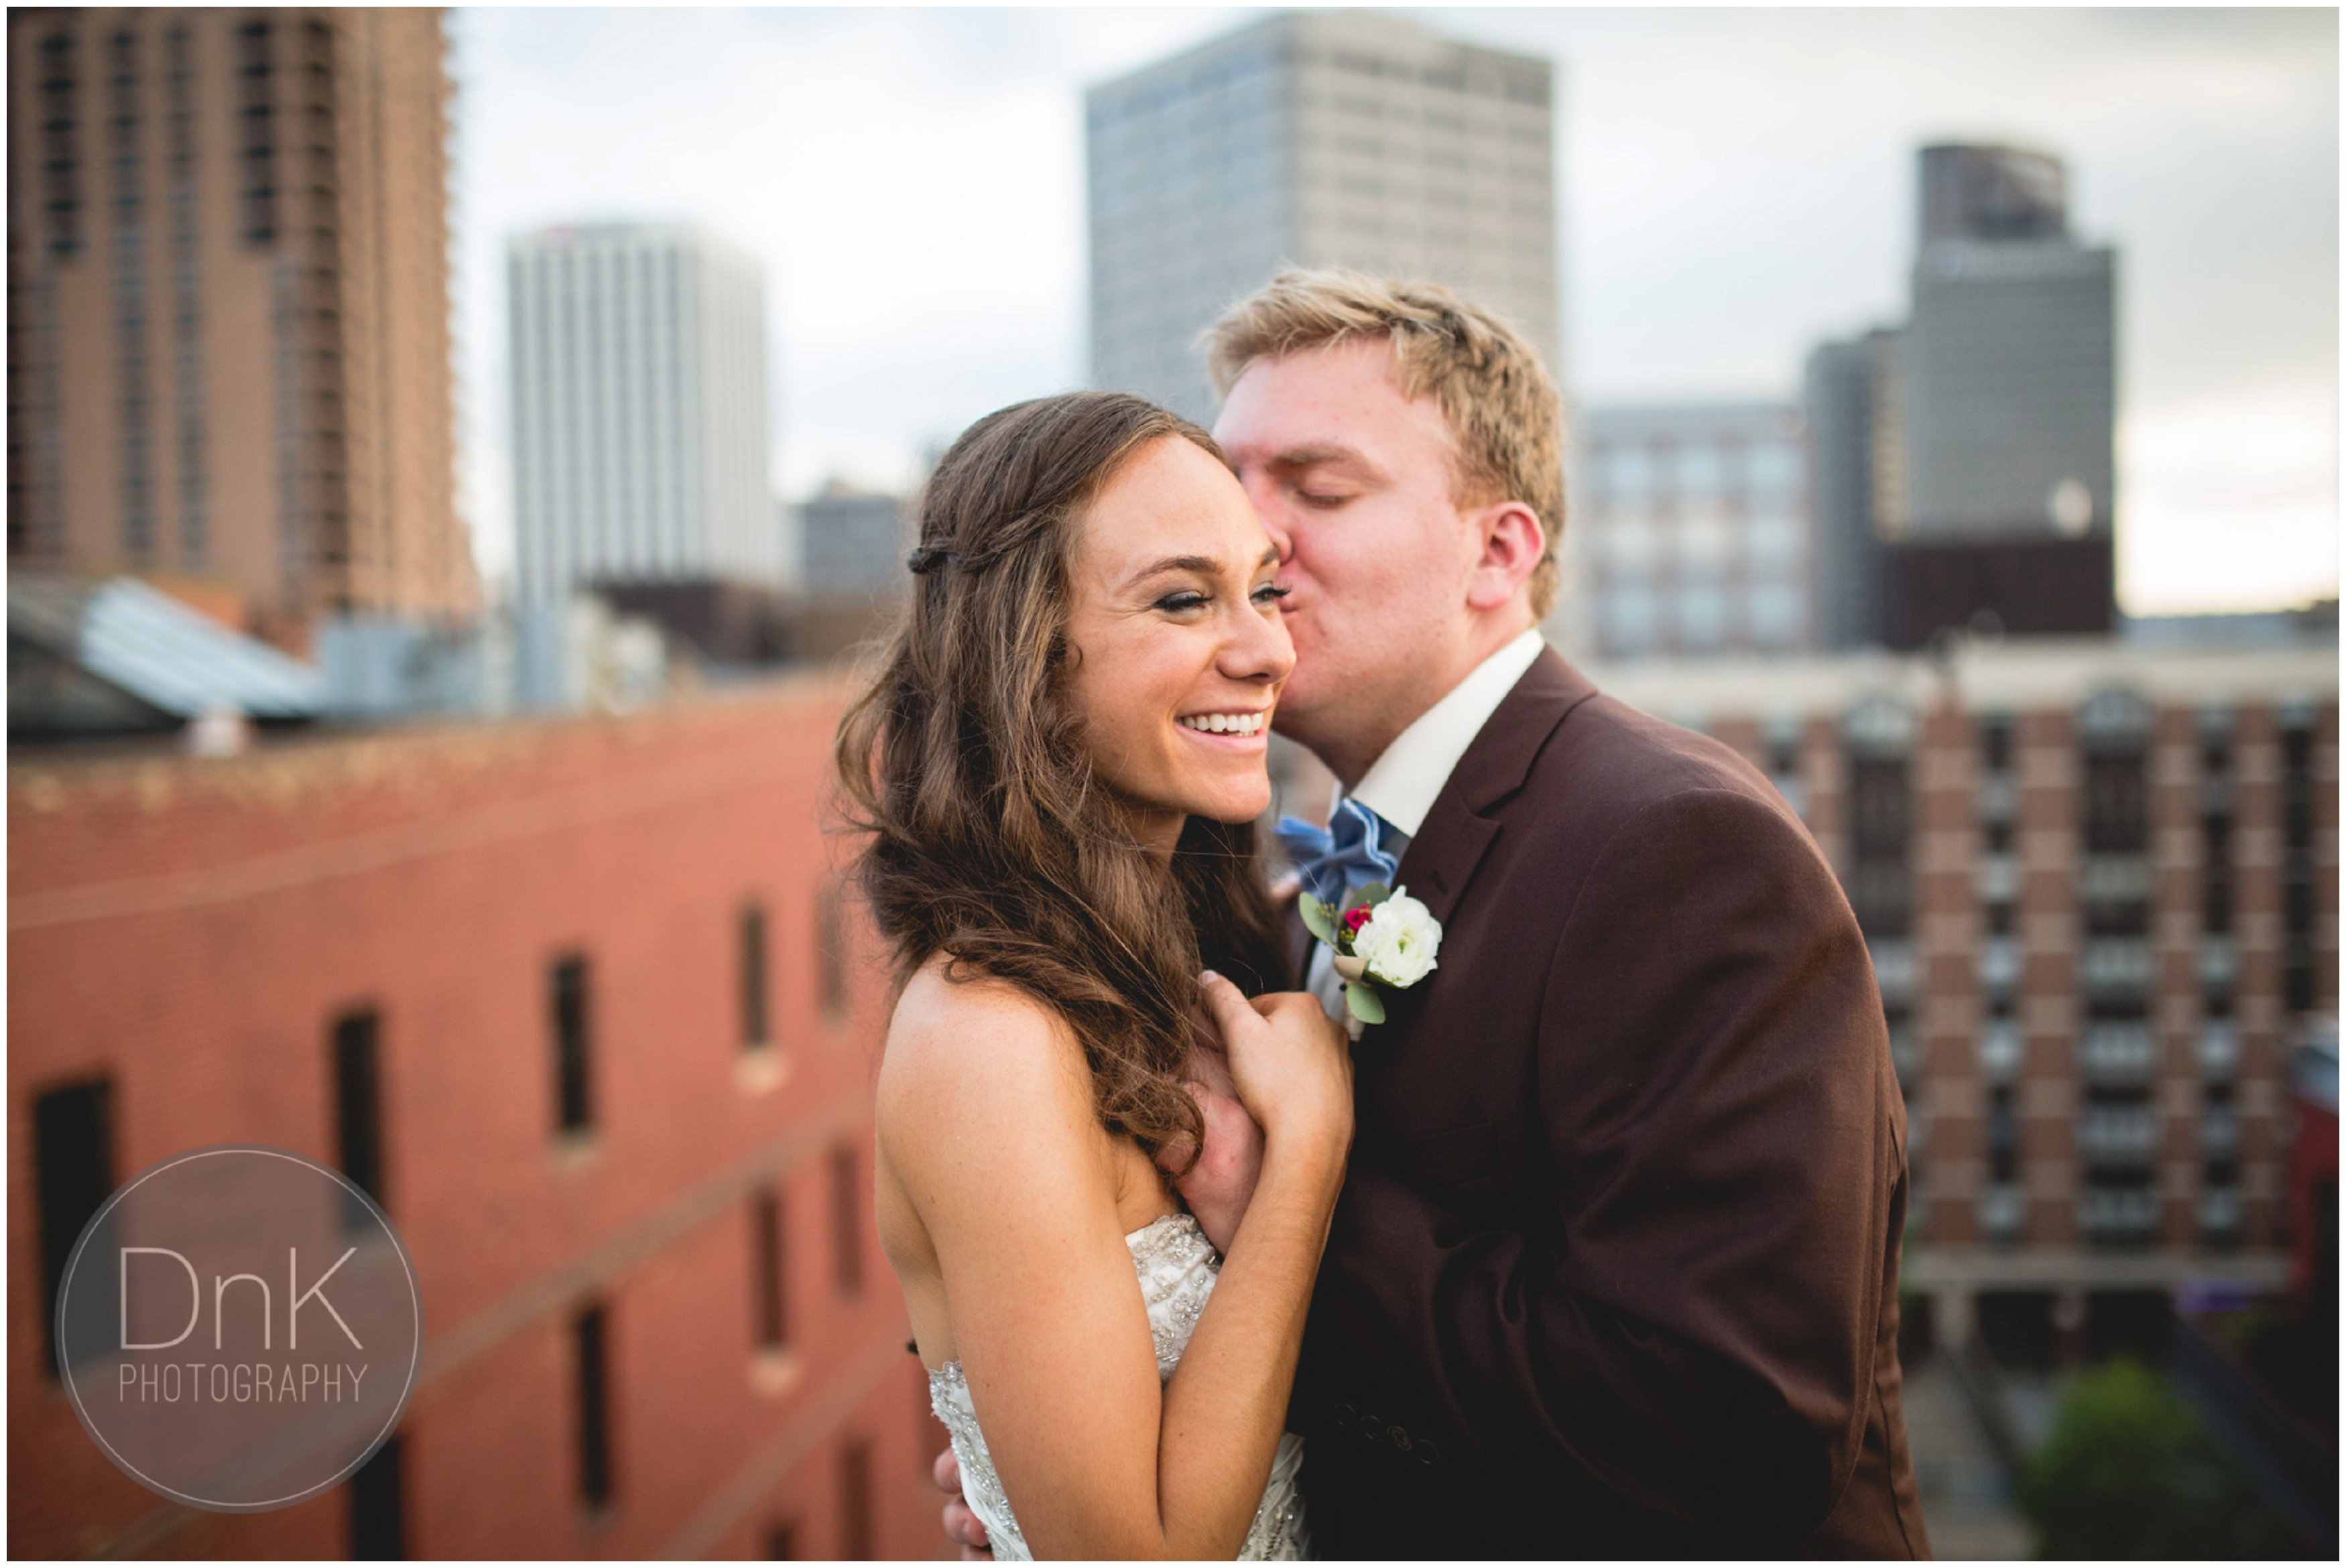 31 - 413 on Wacouta Wedding Pictures Rooftop Wedding Pictures Minneapolis Wedding Photographer